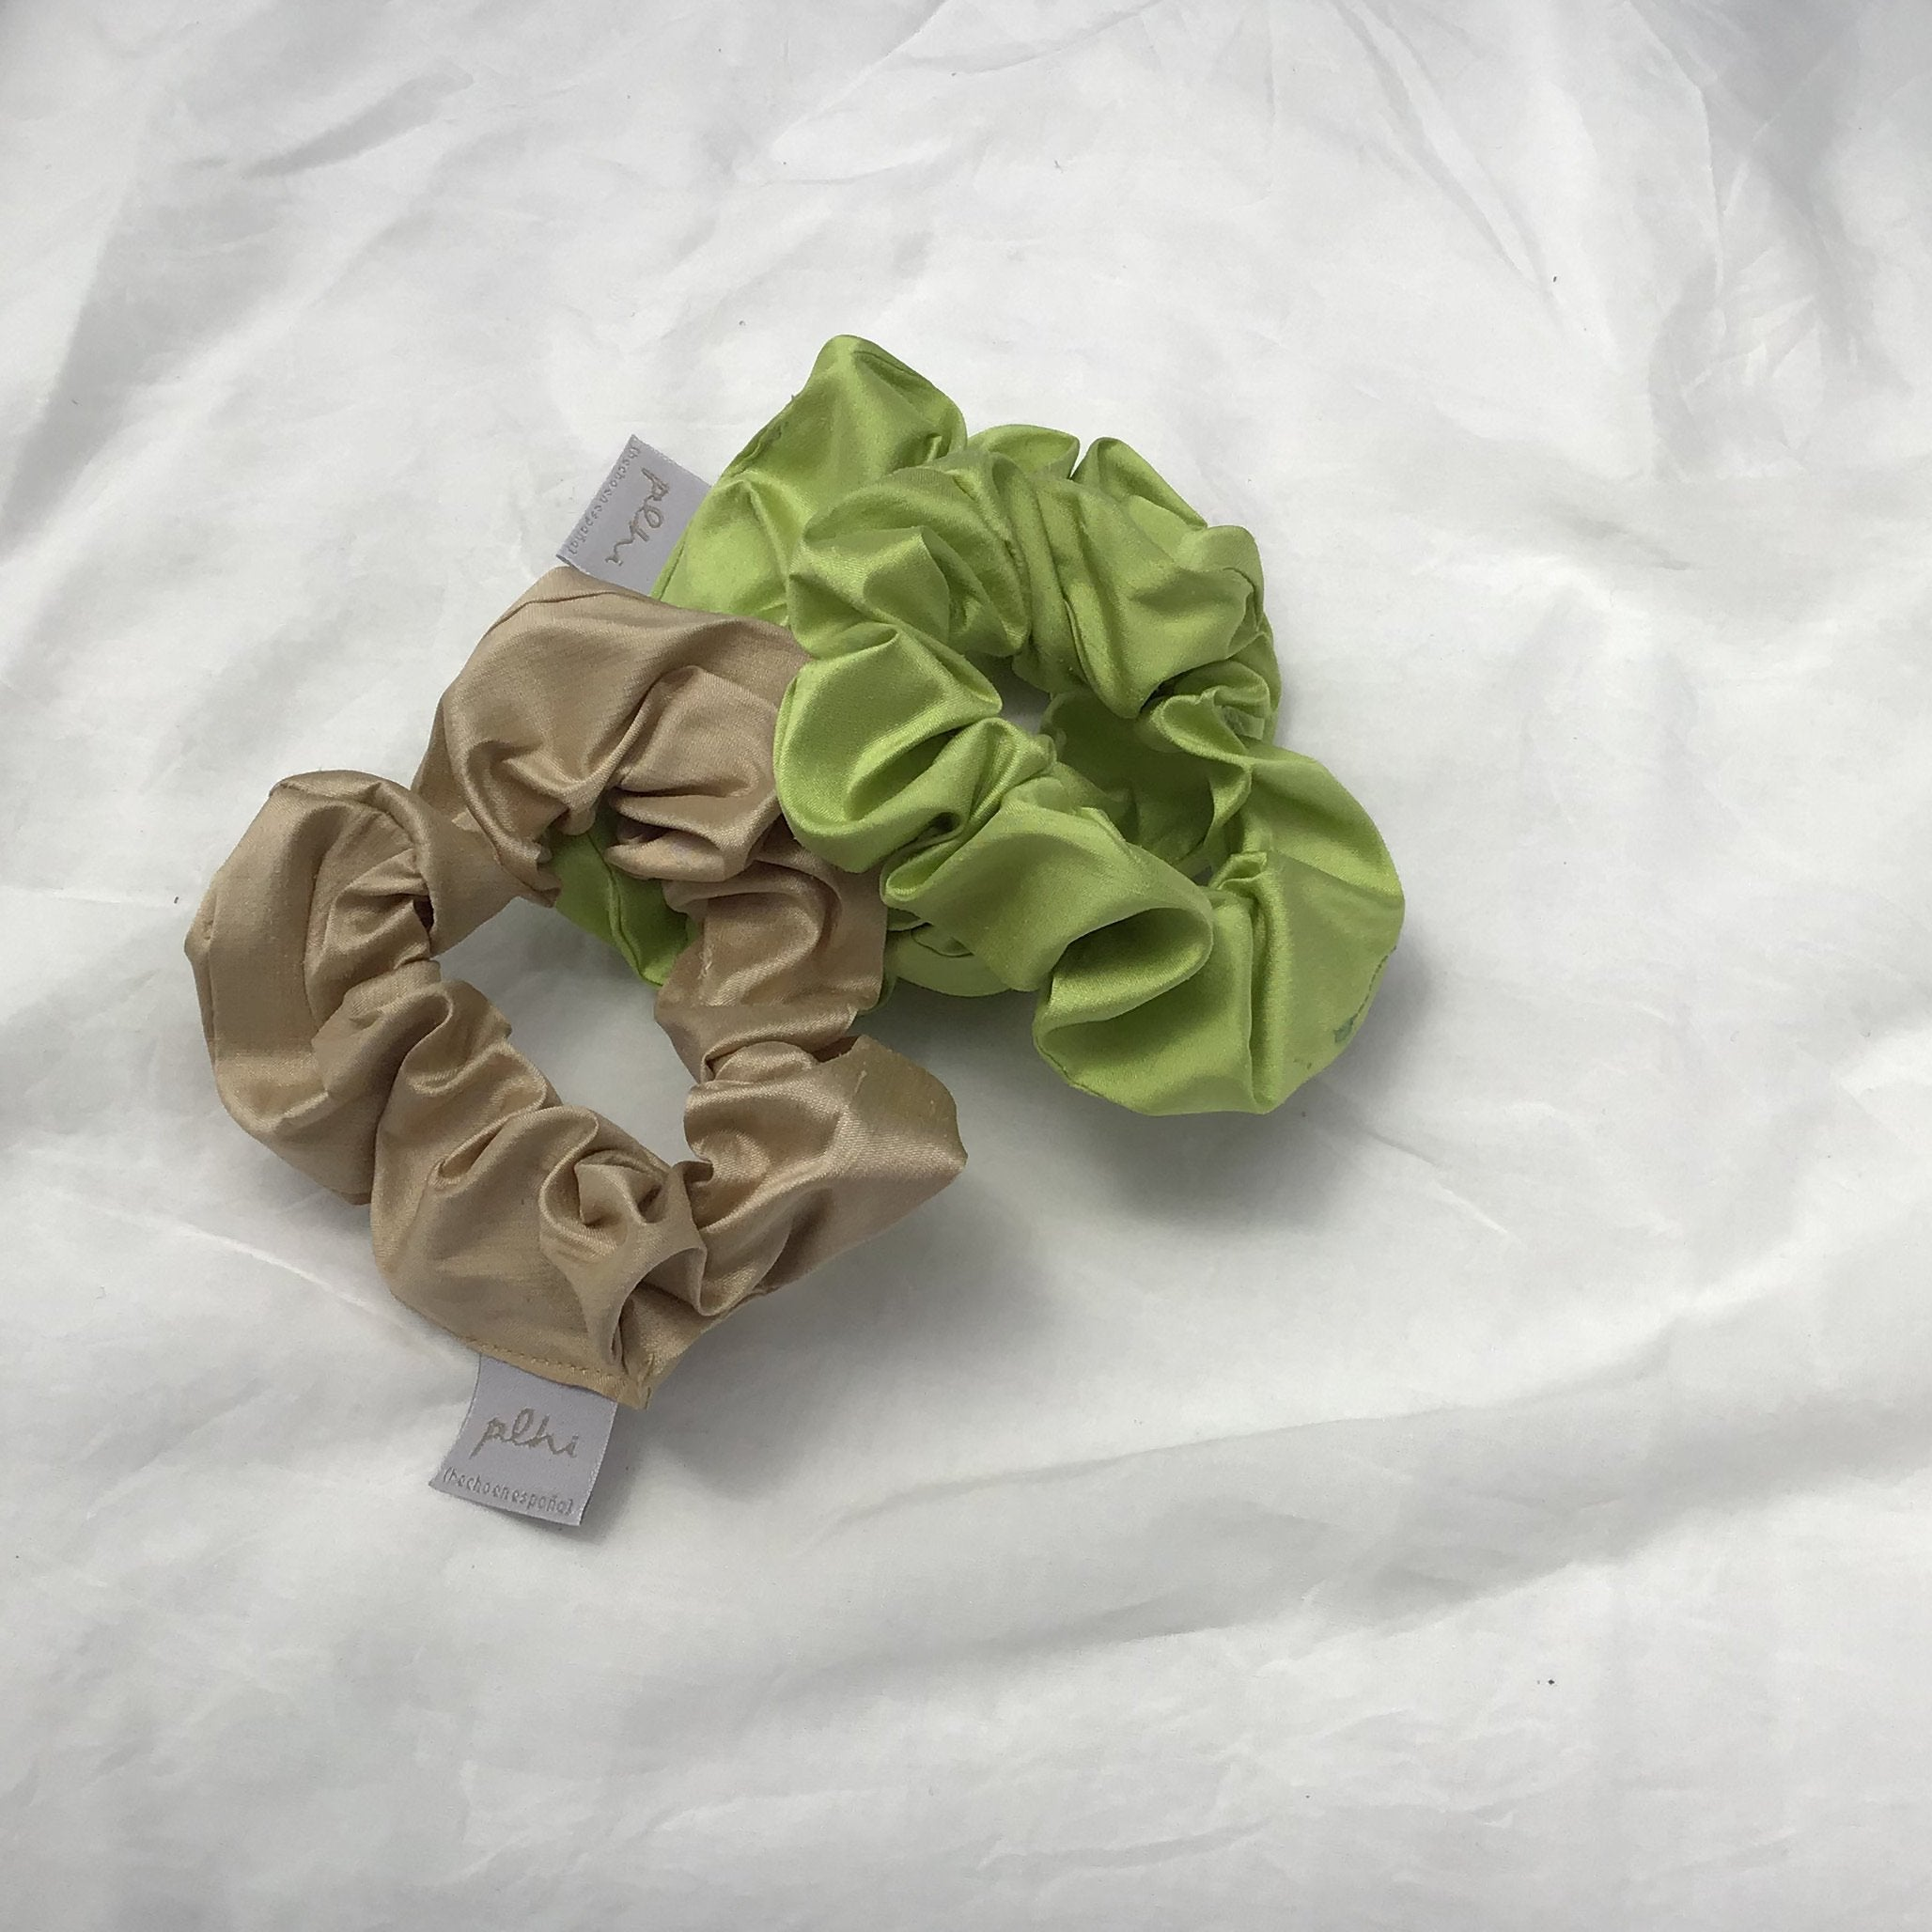 Silk scrunchie - Plhi studio